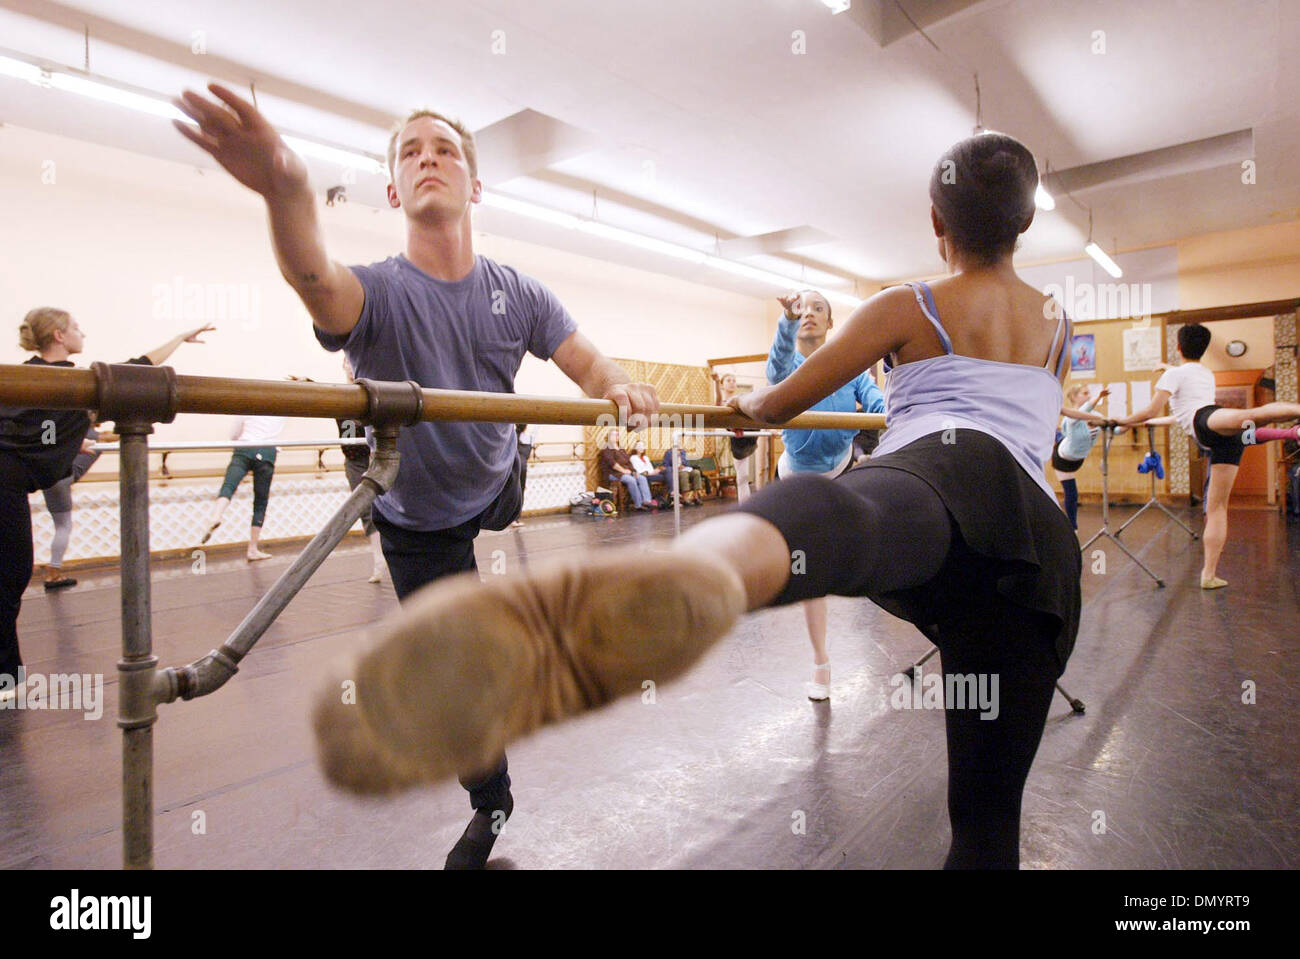 Nov 08, 2006; Hayward, CA, USA; Nutcracker Ballet dancers BEN BARNHART, left, and MICHELLE BROWN rehearse at the Stock Photo